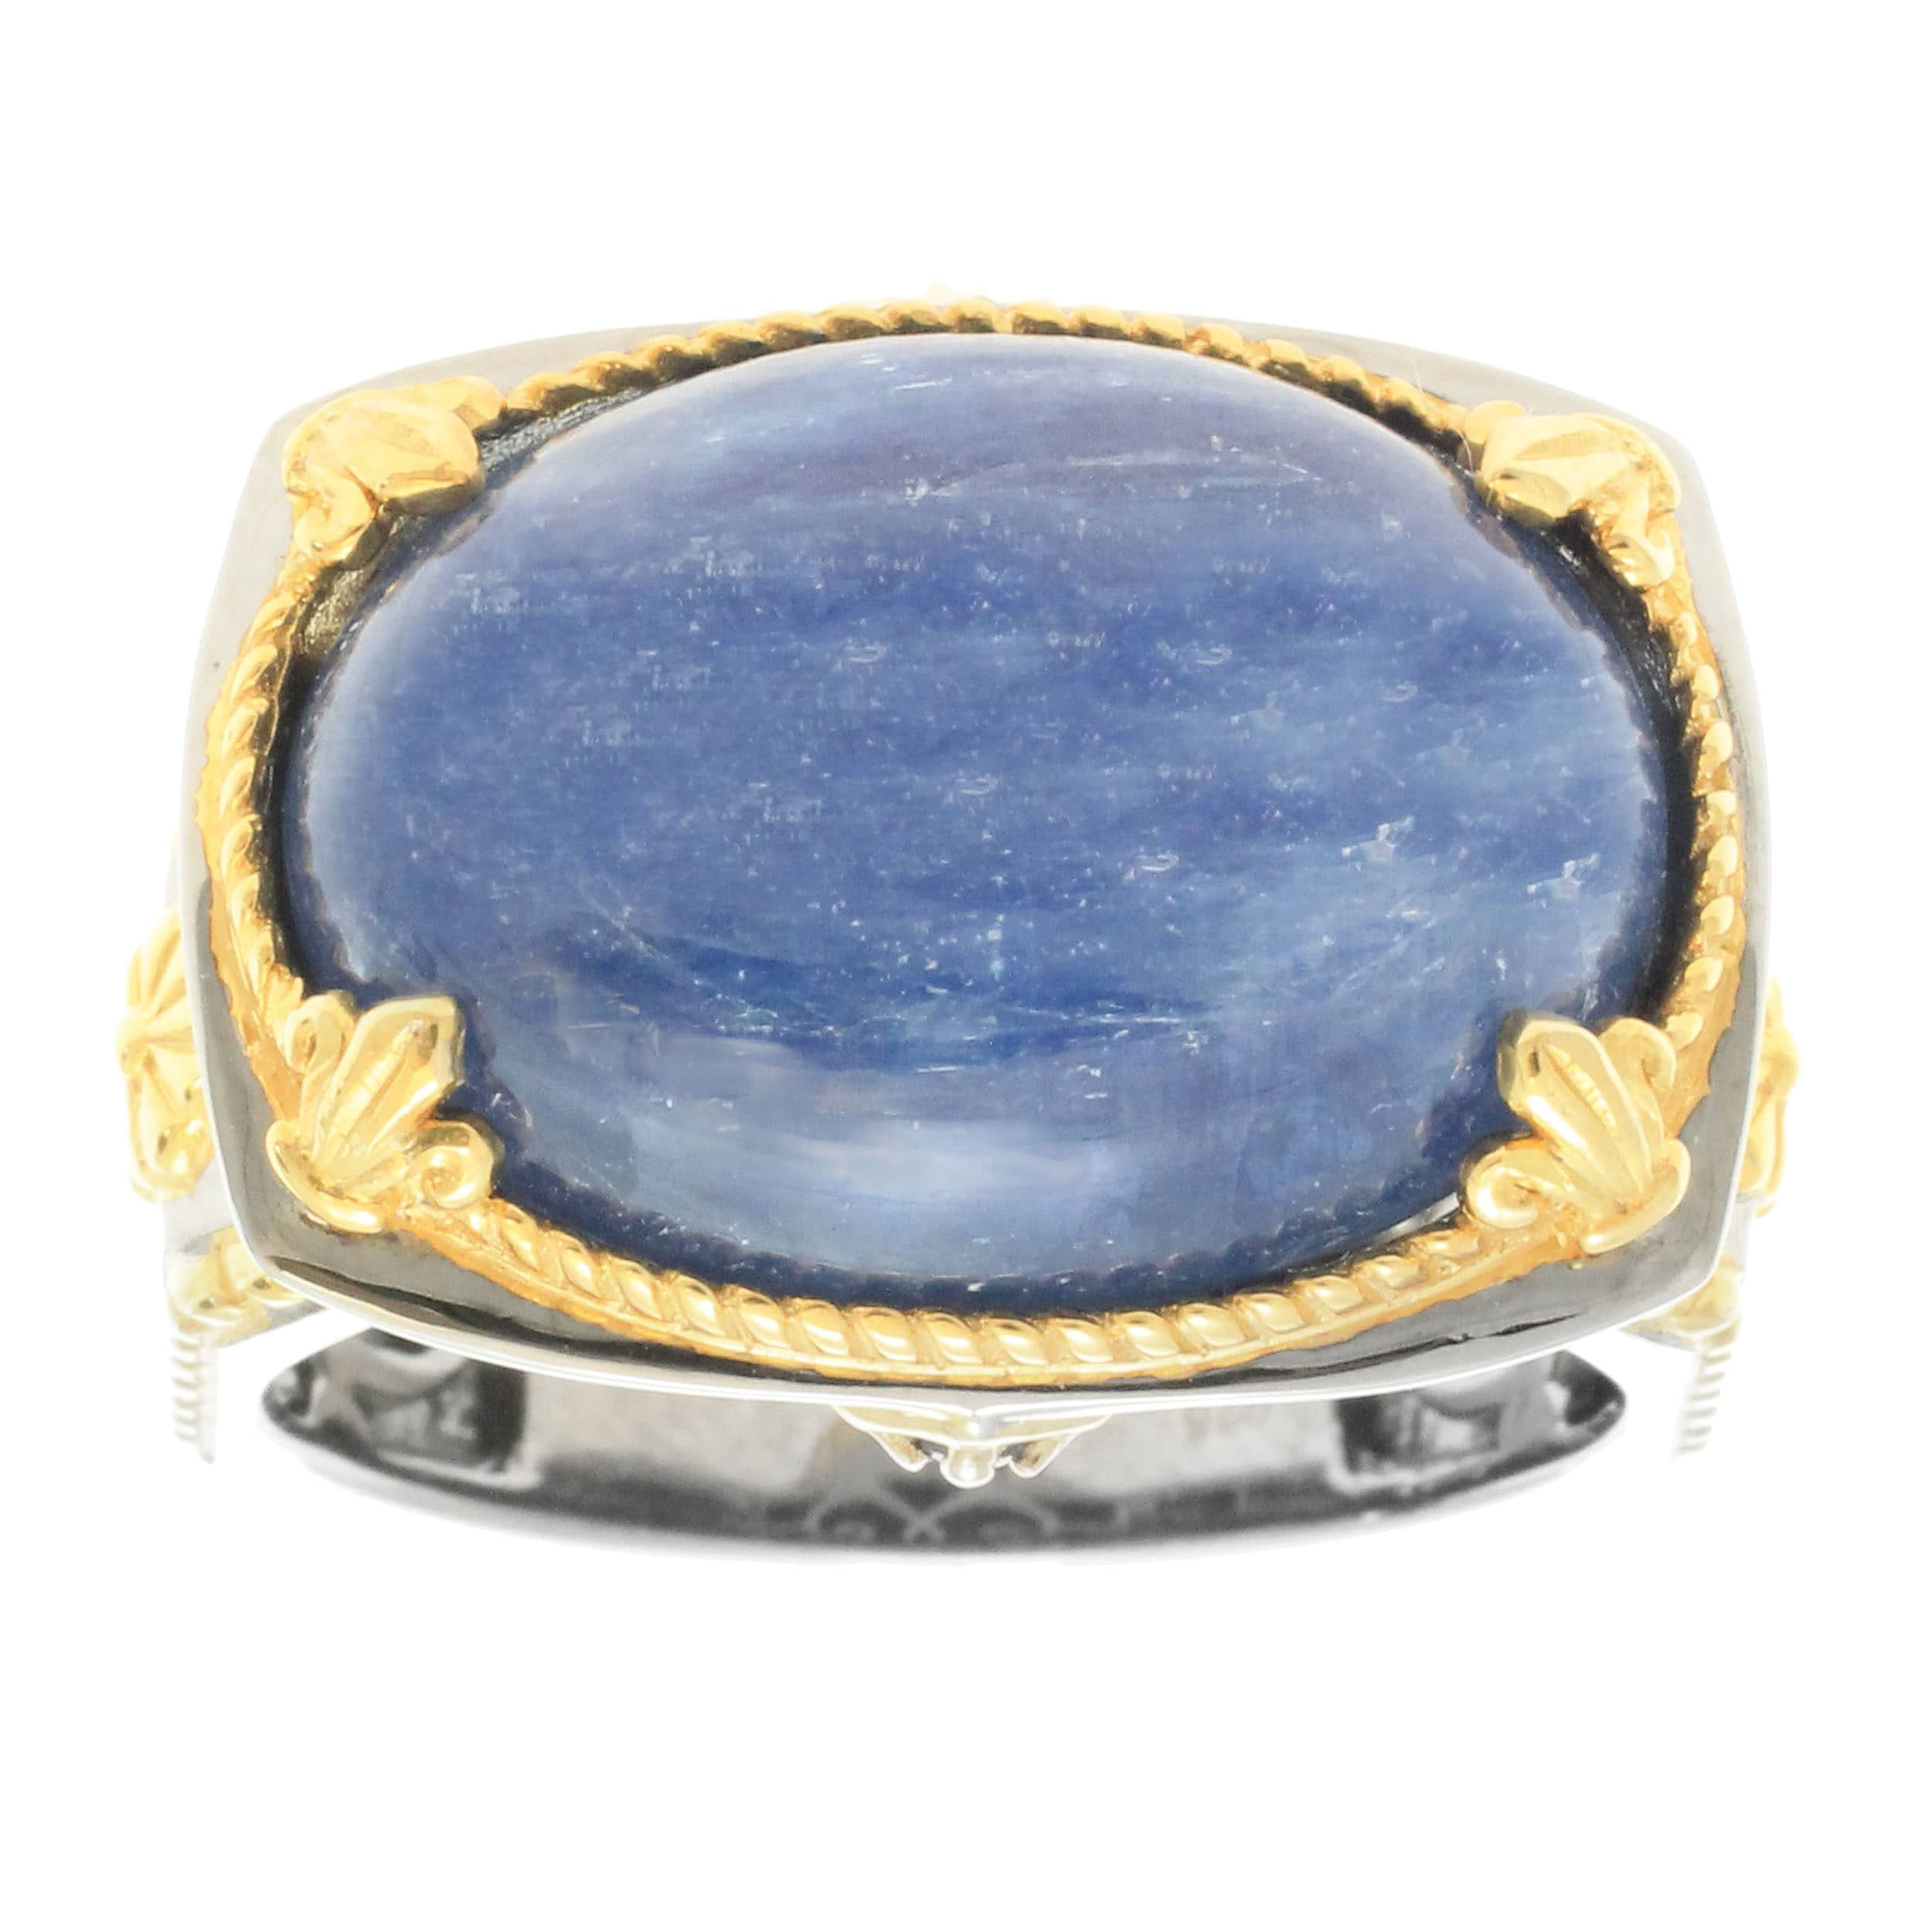 kyanite blue rings through ring a journey jewelry shop dsc art star sapphire